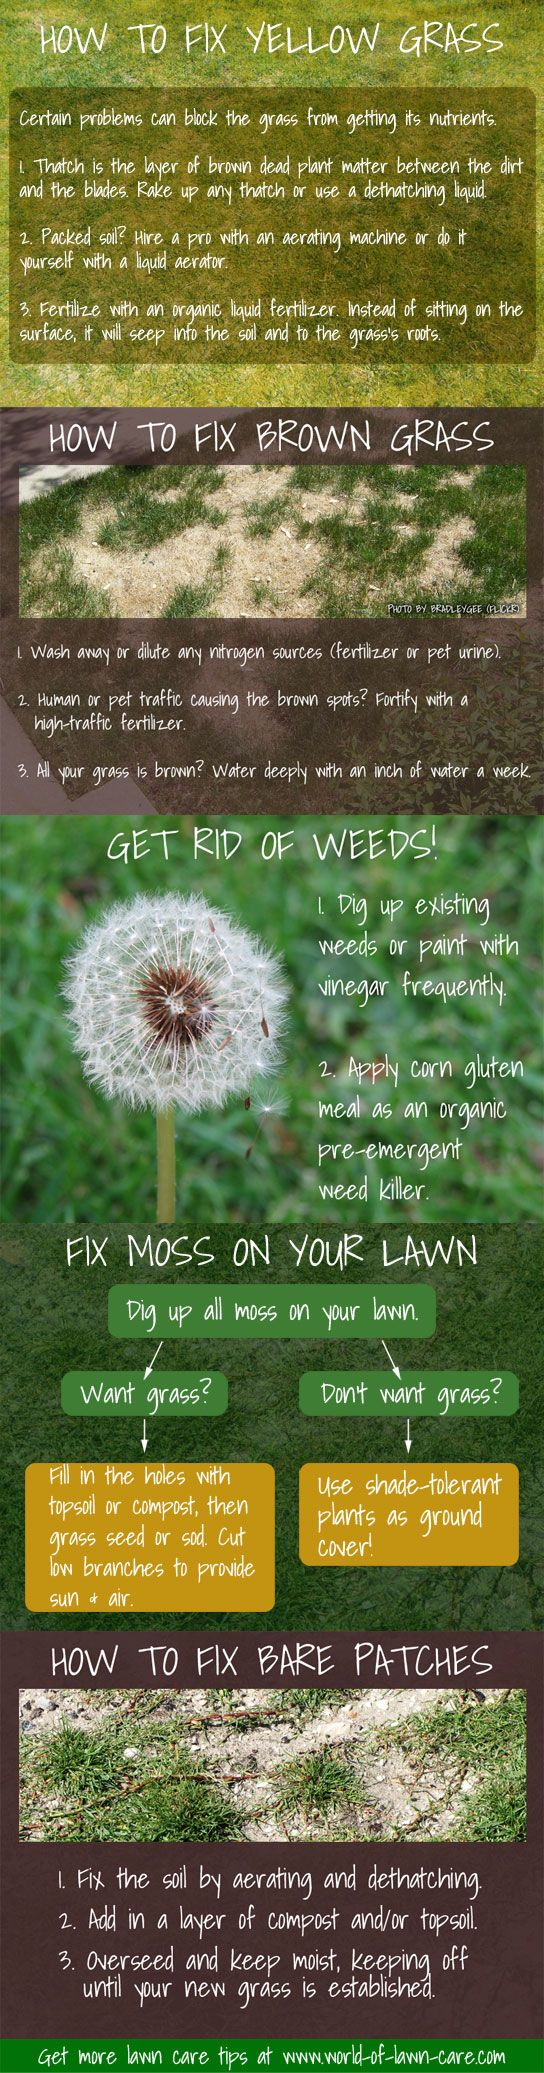 best ideas about lawn care diy landscaping ideas 5 lawn repair fixes for yellowing grass bare brown patches weeds and lawncare grassideas